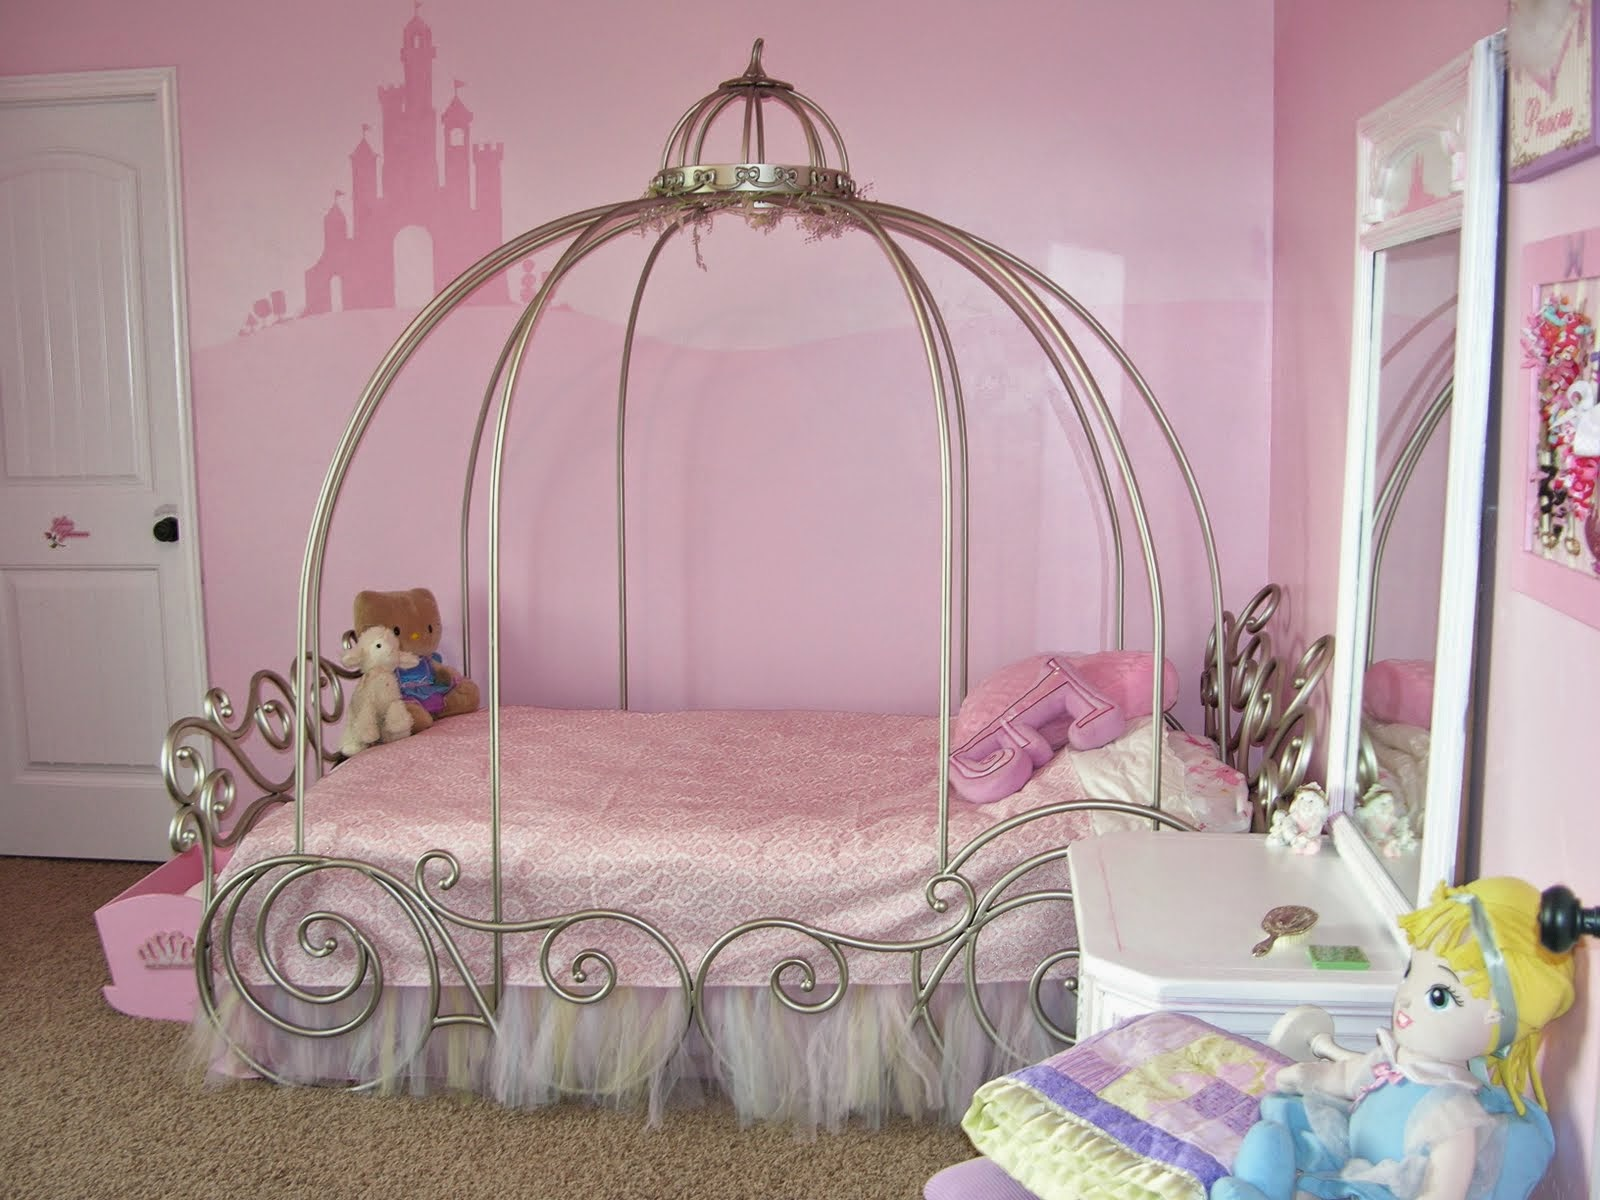 20 little girl's bedroom decorating ideas on Decoration For Girls Room  id=31668